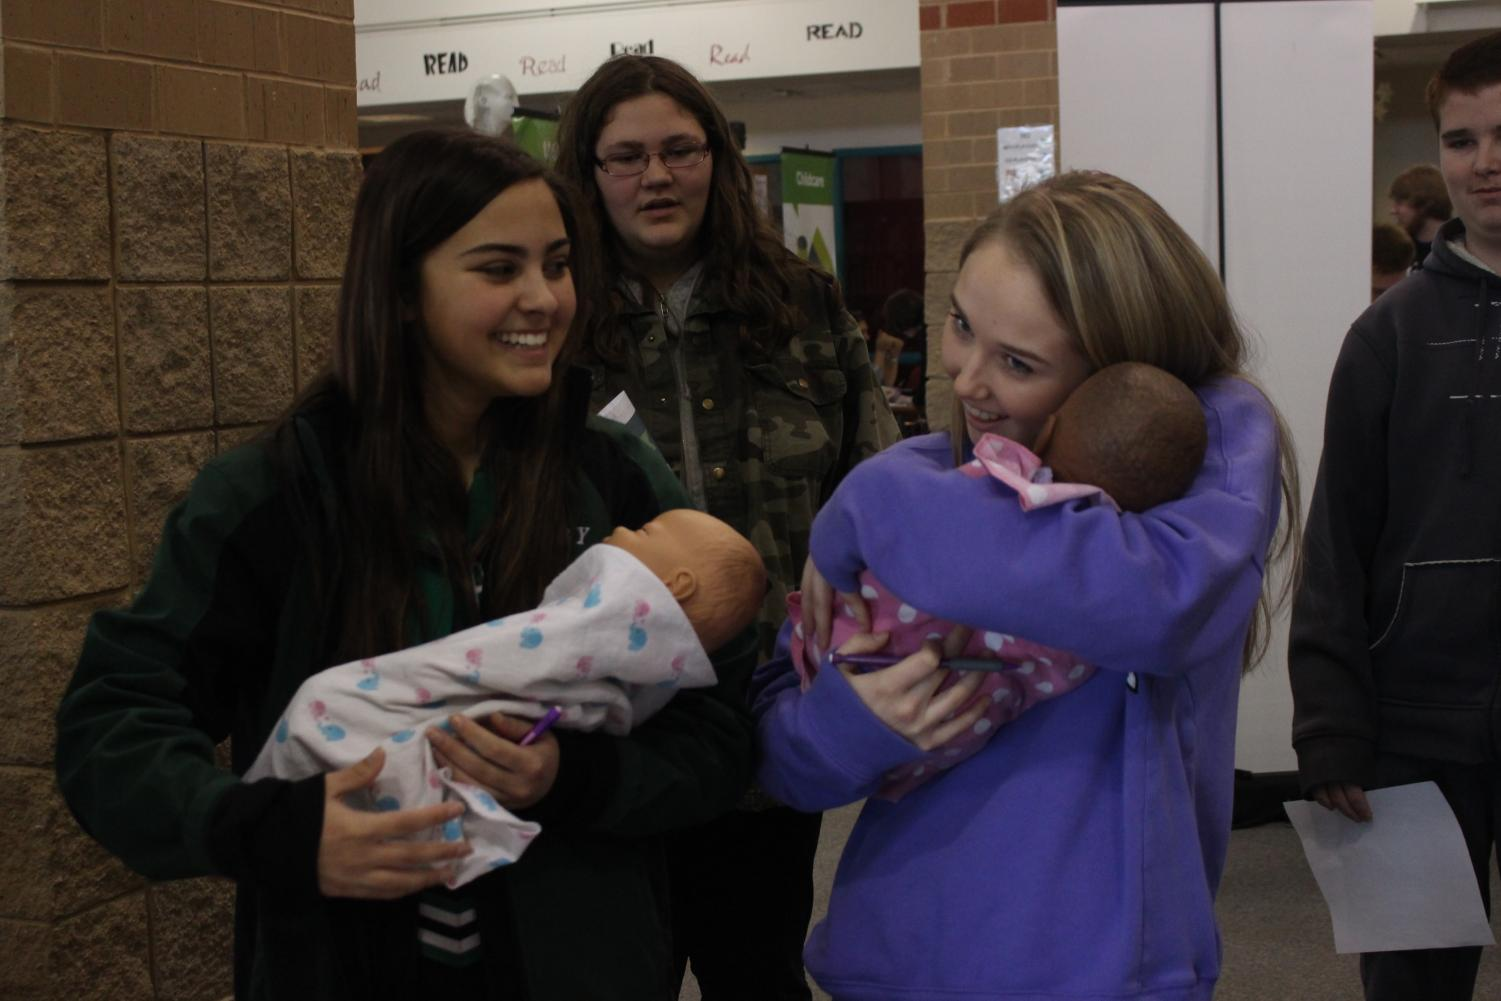 Freshman Lauren Amend (left) laughs at freshman Brylee Hull (right) who was trying to get the mechanical baby to stop crying.